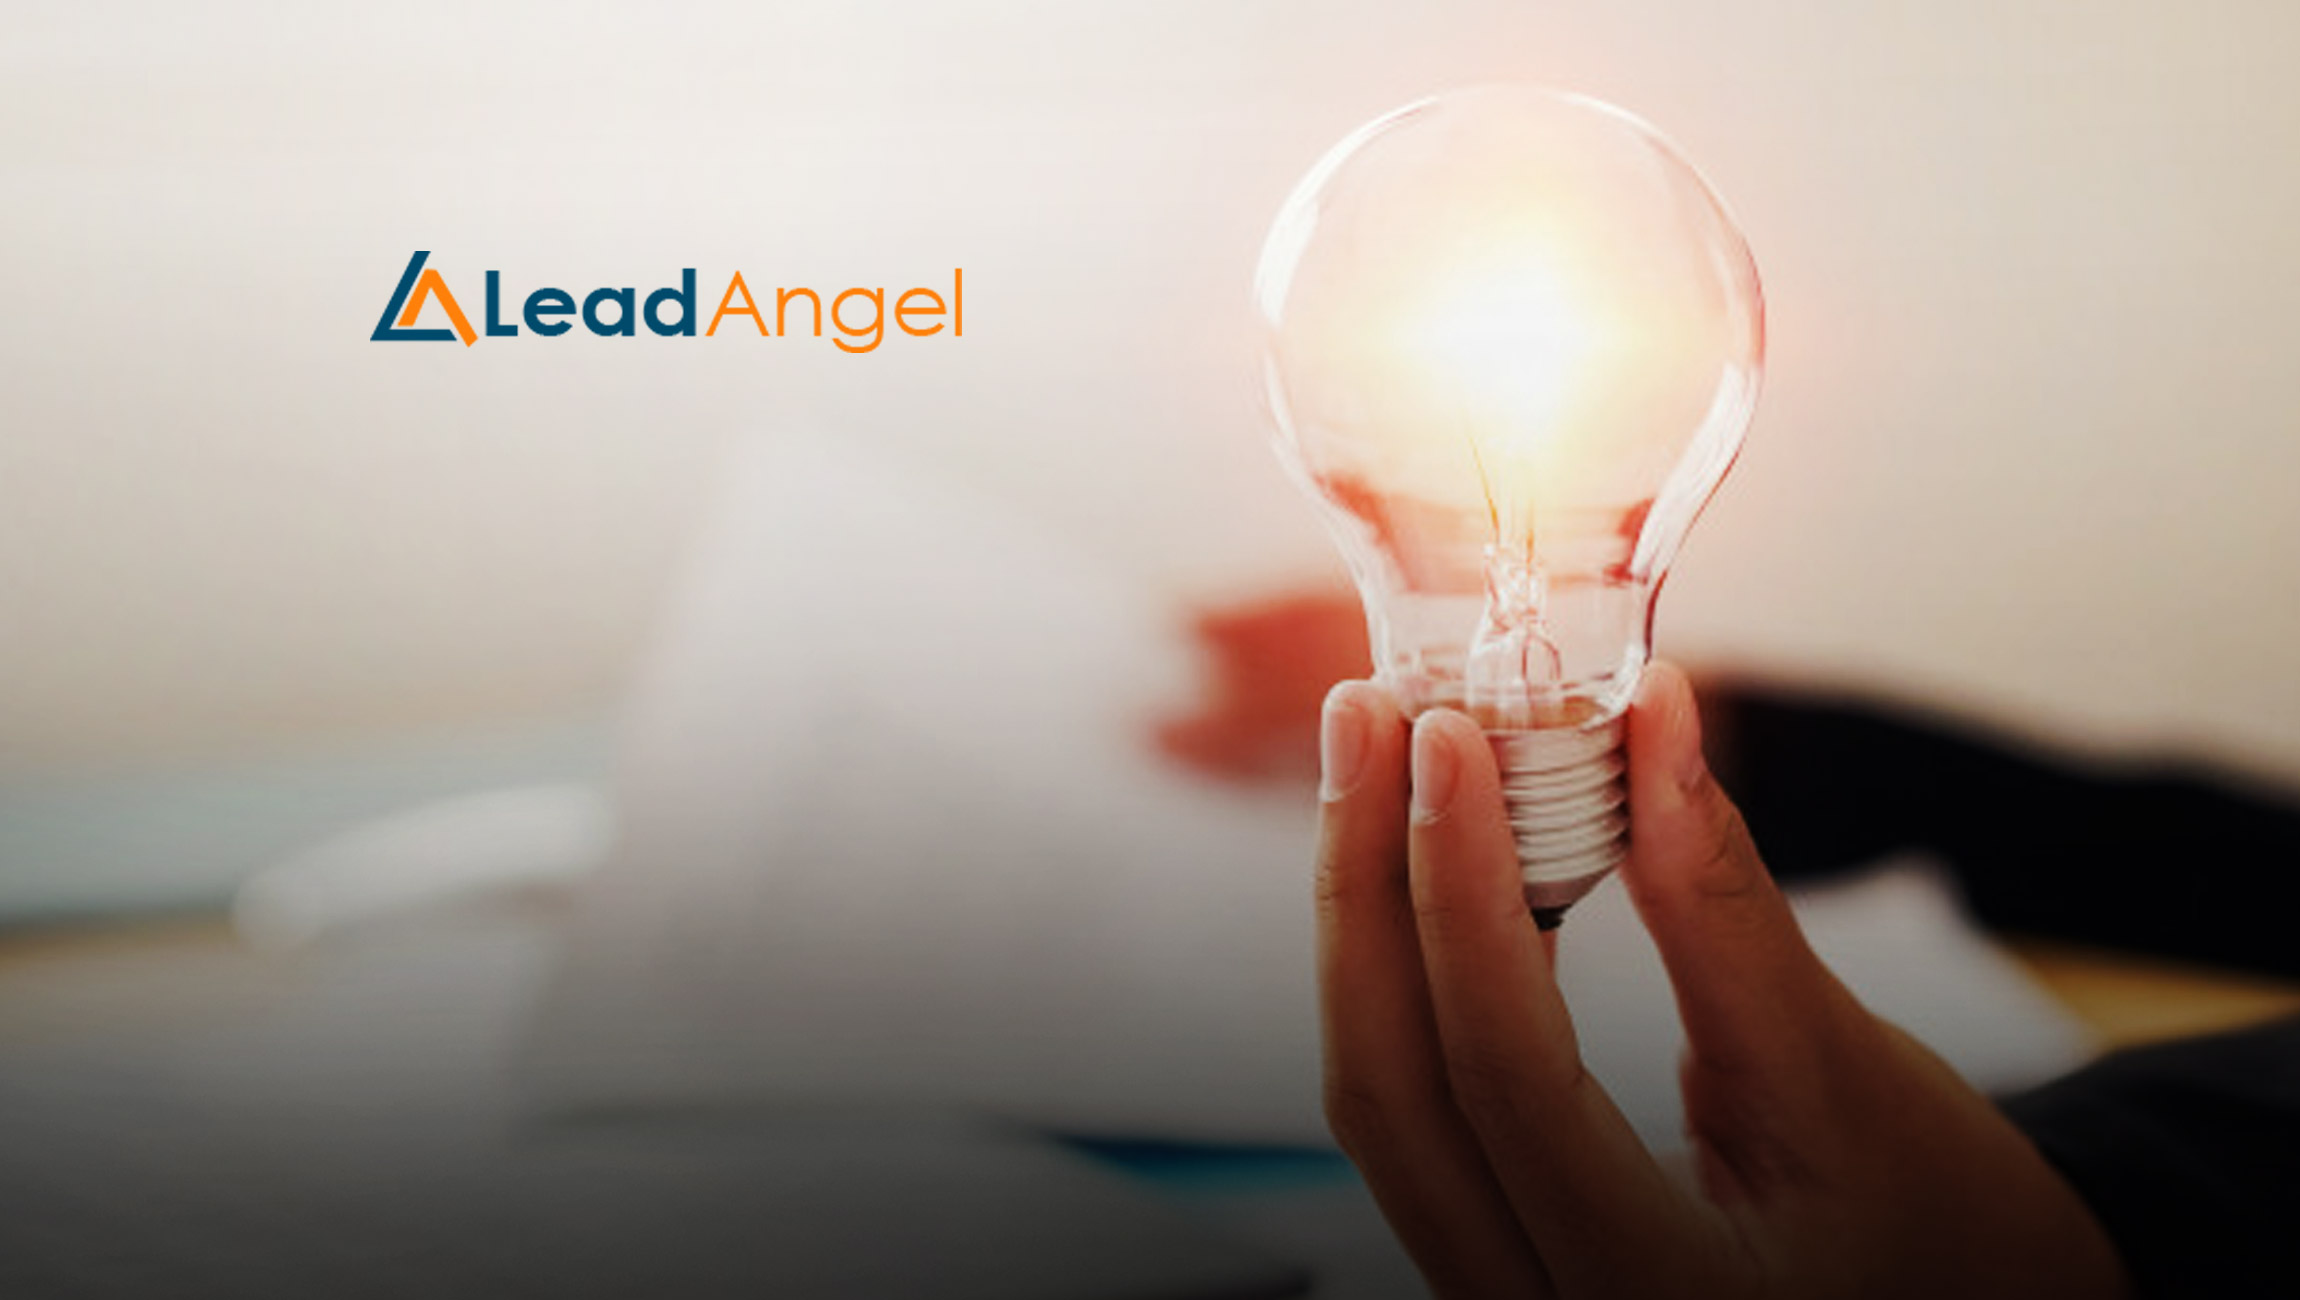 LeadAngel Releases ABM Segmentation and Targeting for Marketo